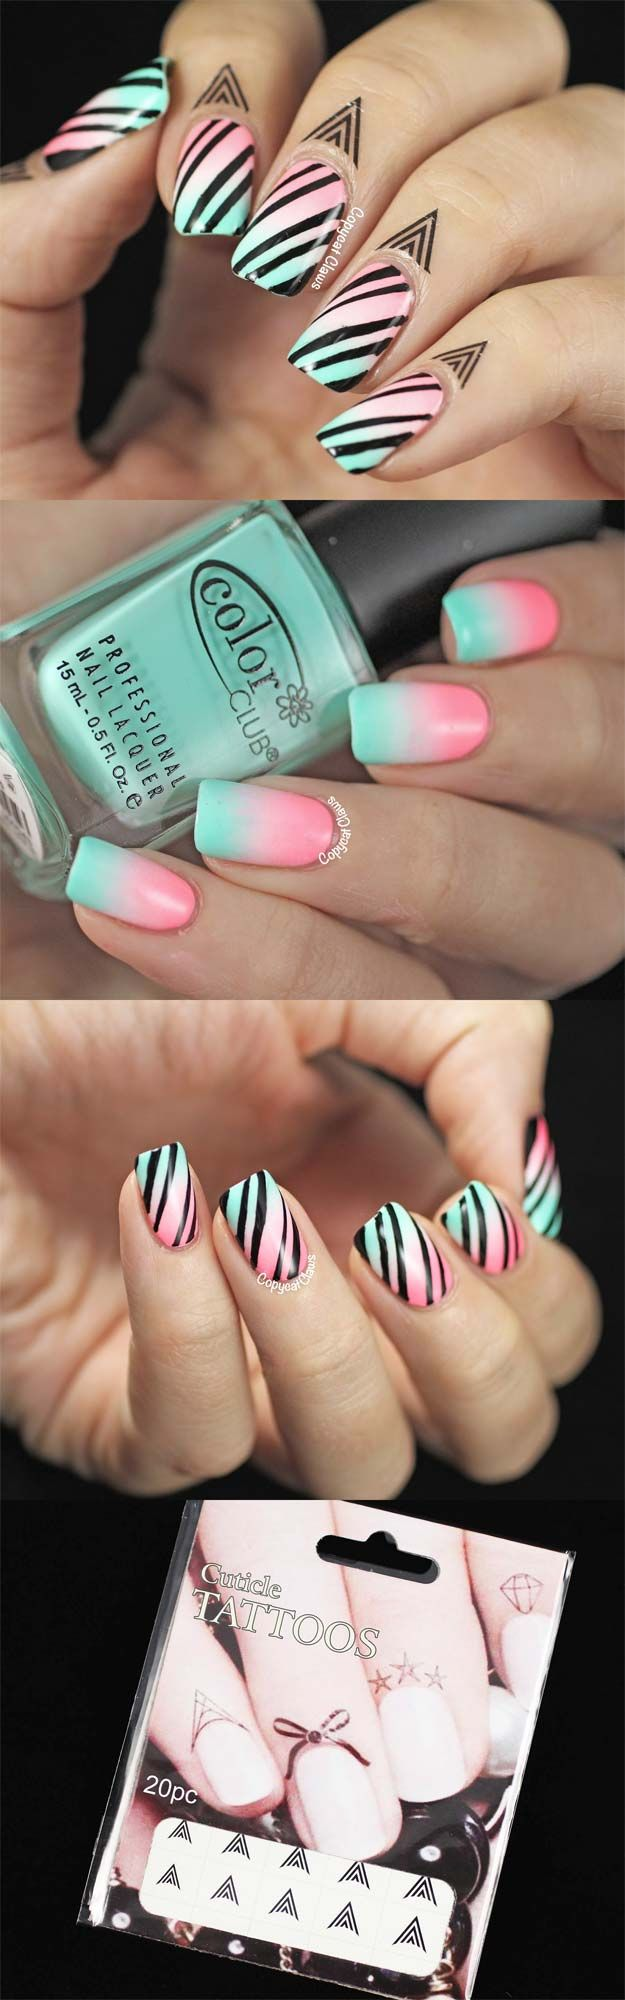 Best 25 tape nail designs ideas on pinterest diy nails art 36 striped nail art ideas prinsesfo Choice Image